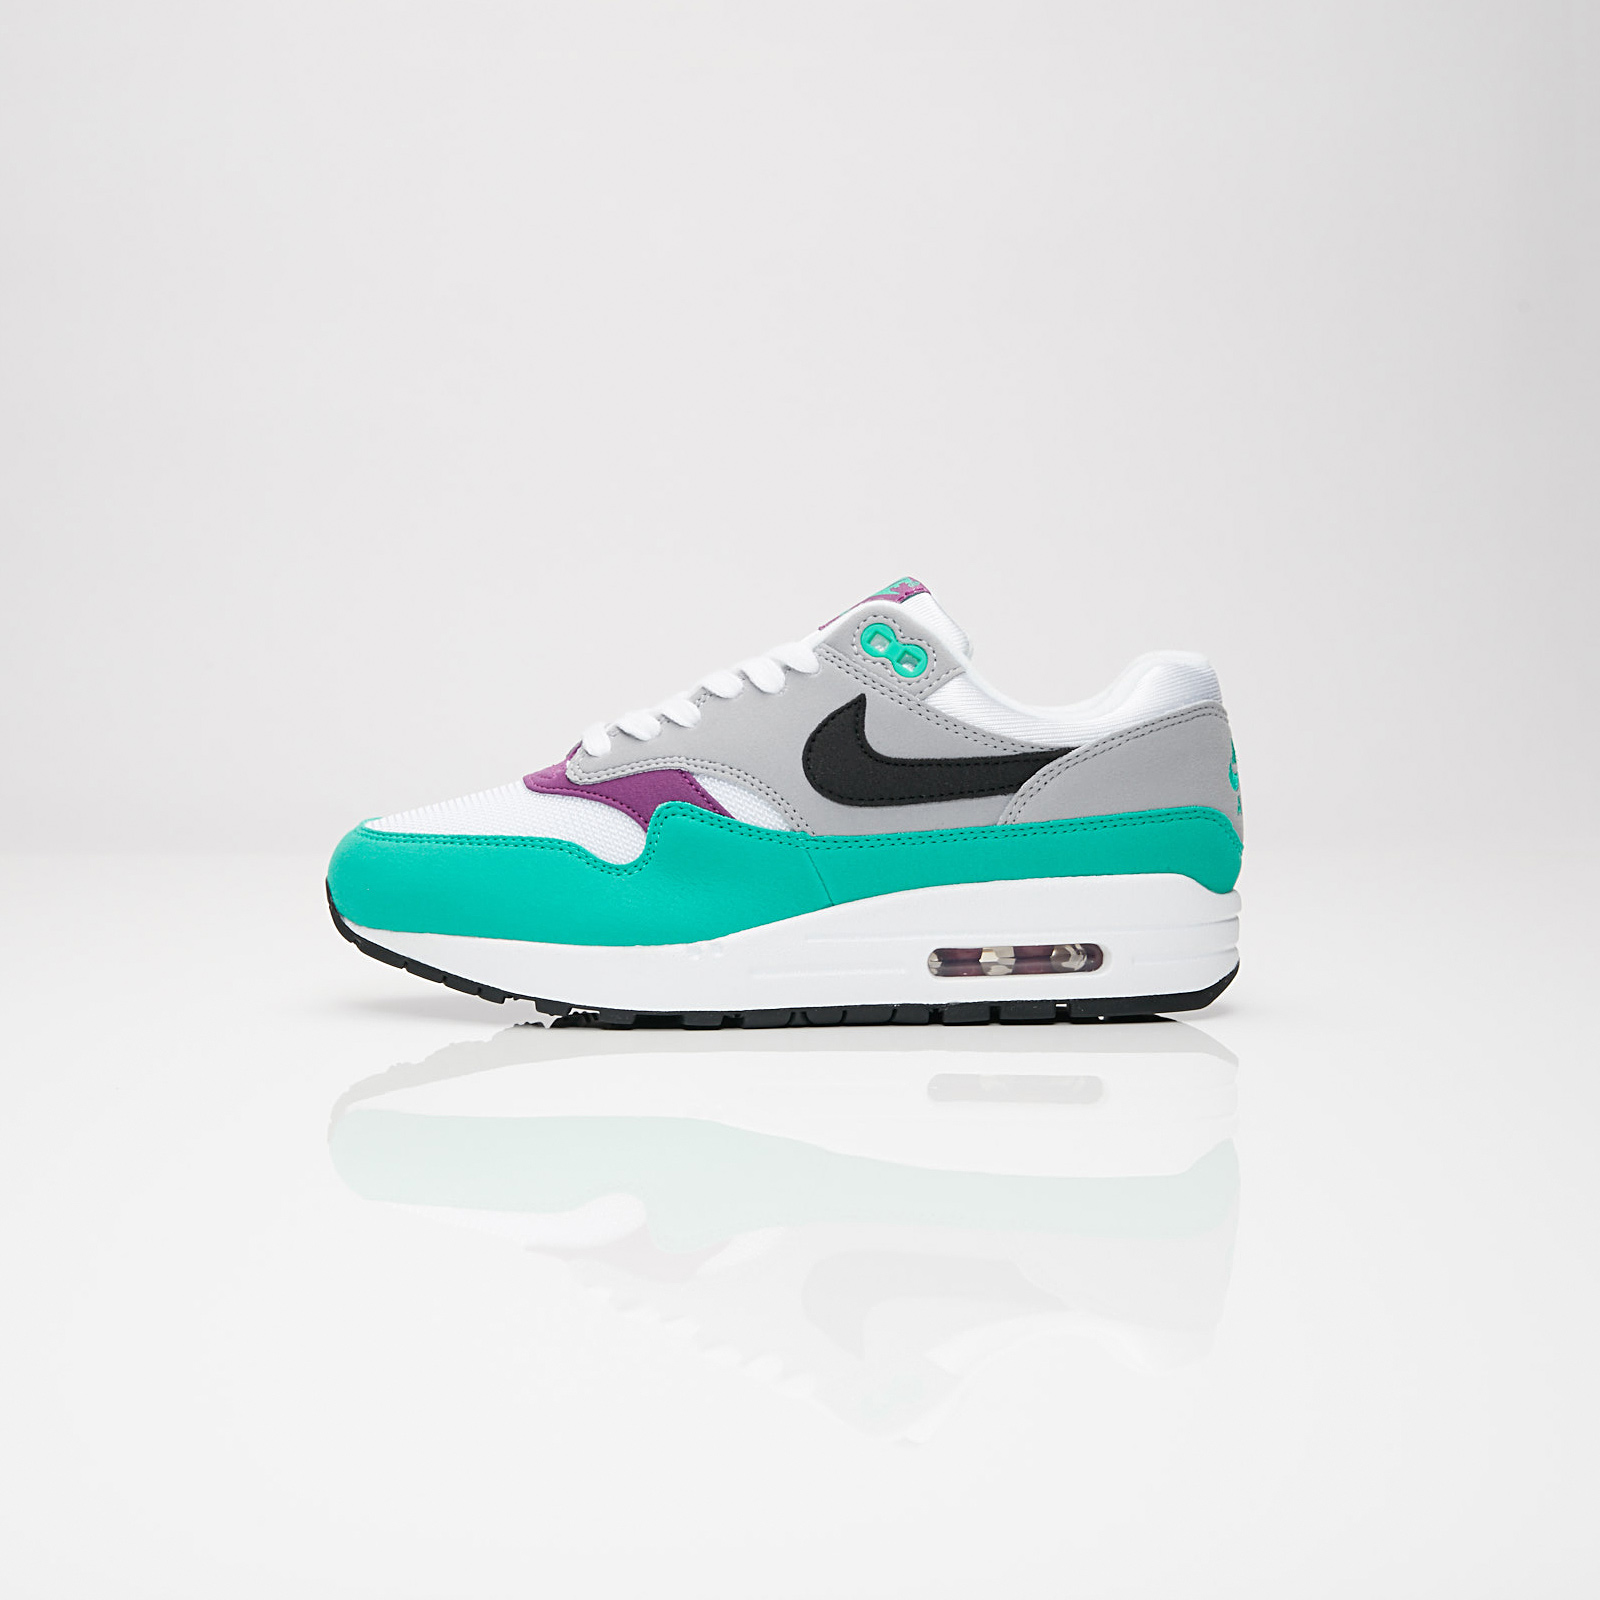 more photos cdefd 4c1d0 Nike Wmns Air Max 1 - 319986-115 - Sneakersnstuff   sneakers   streetwear  online since 1999